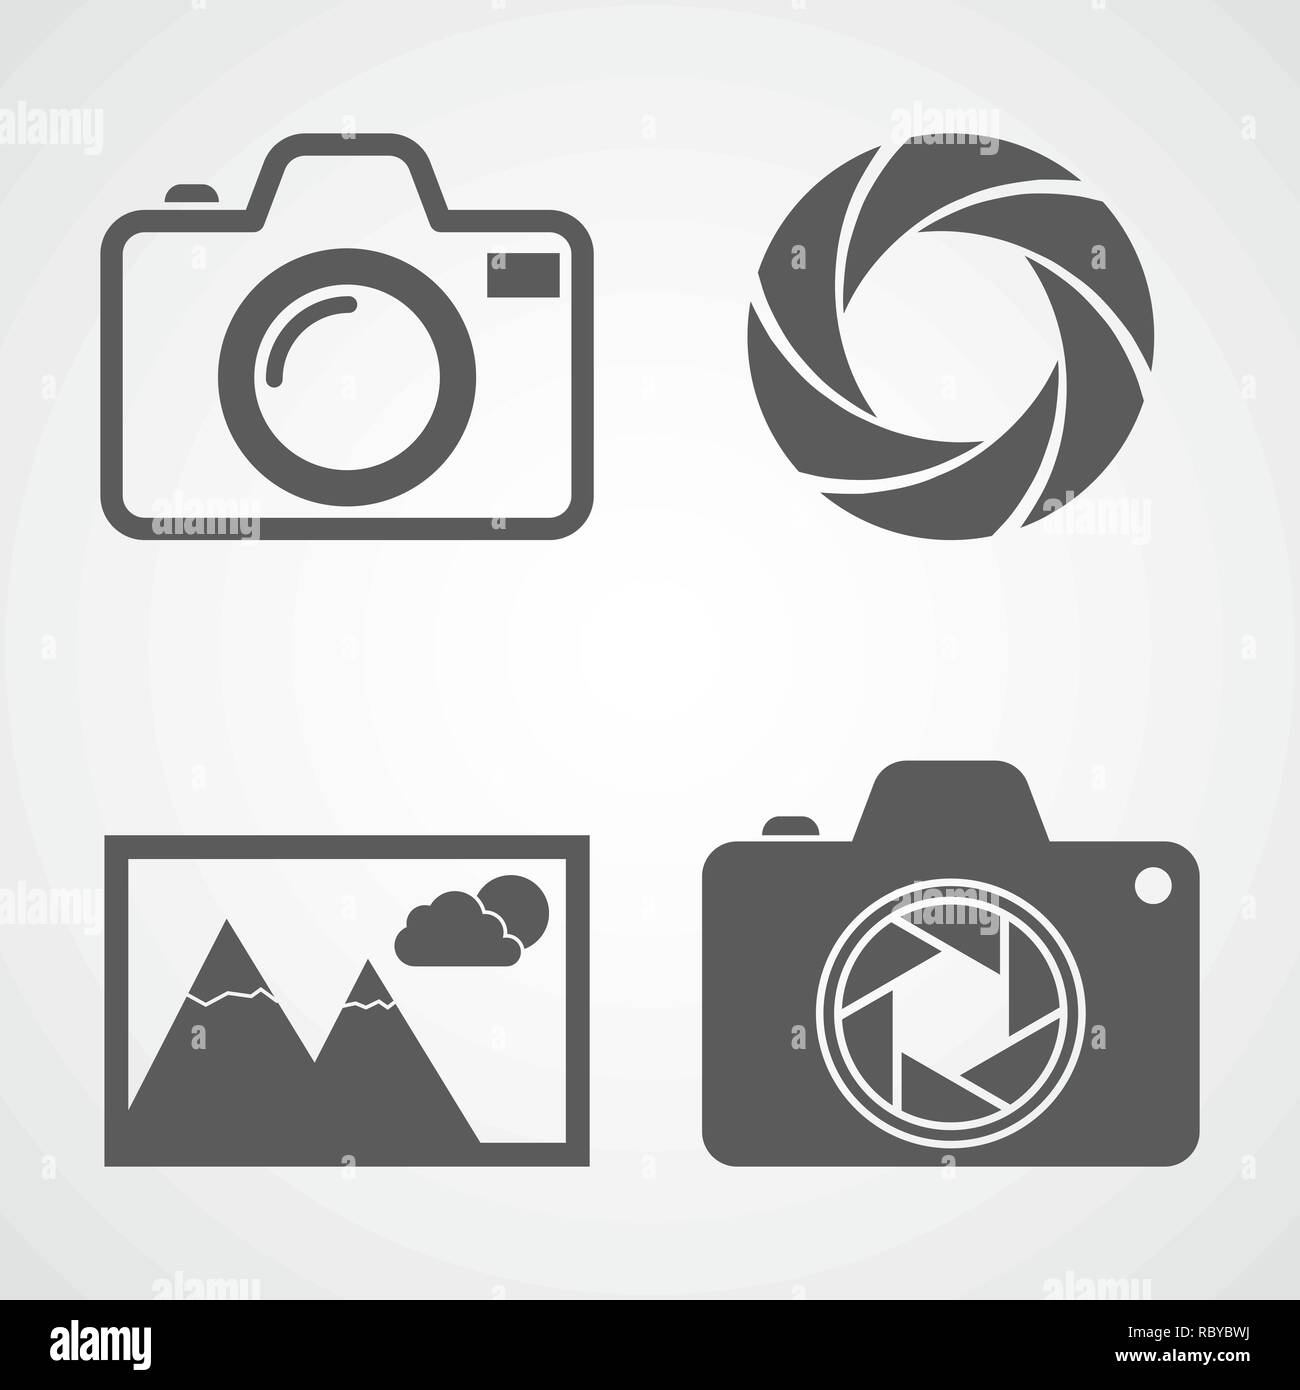 Camera icons, aperture icon, photo icon. Vector illustration. Set of flat icons isolated Stock Vector